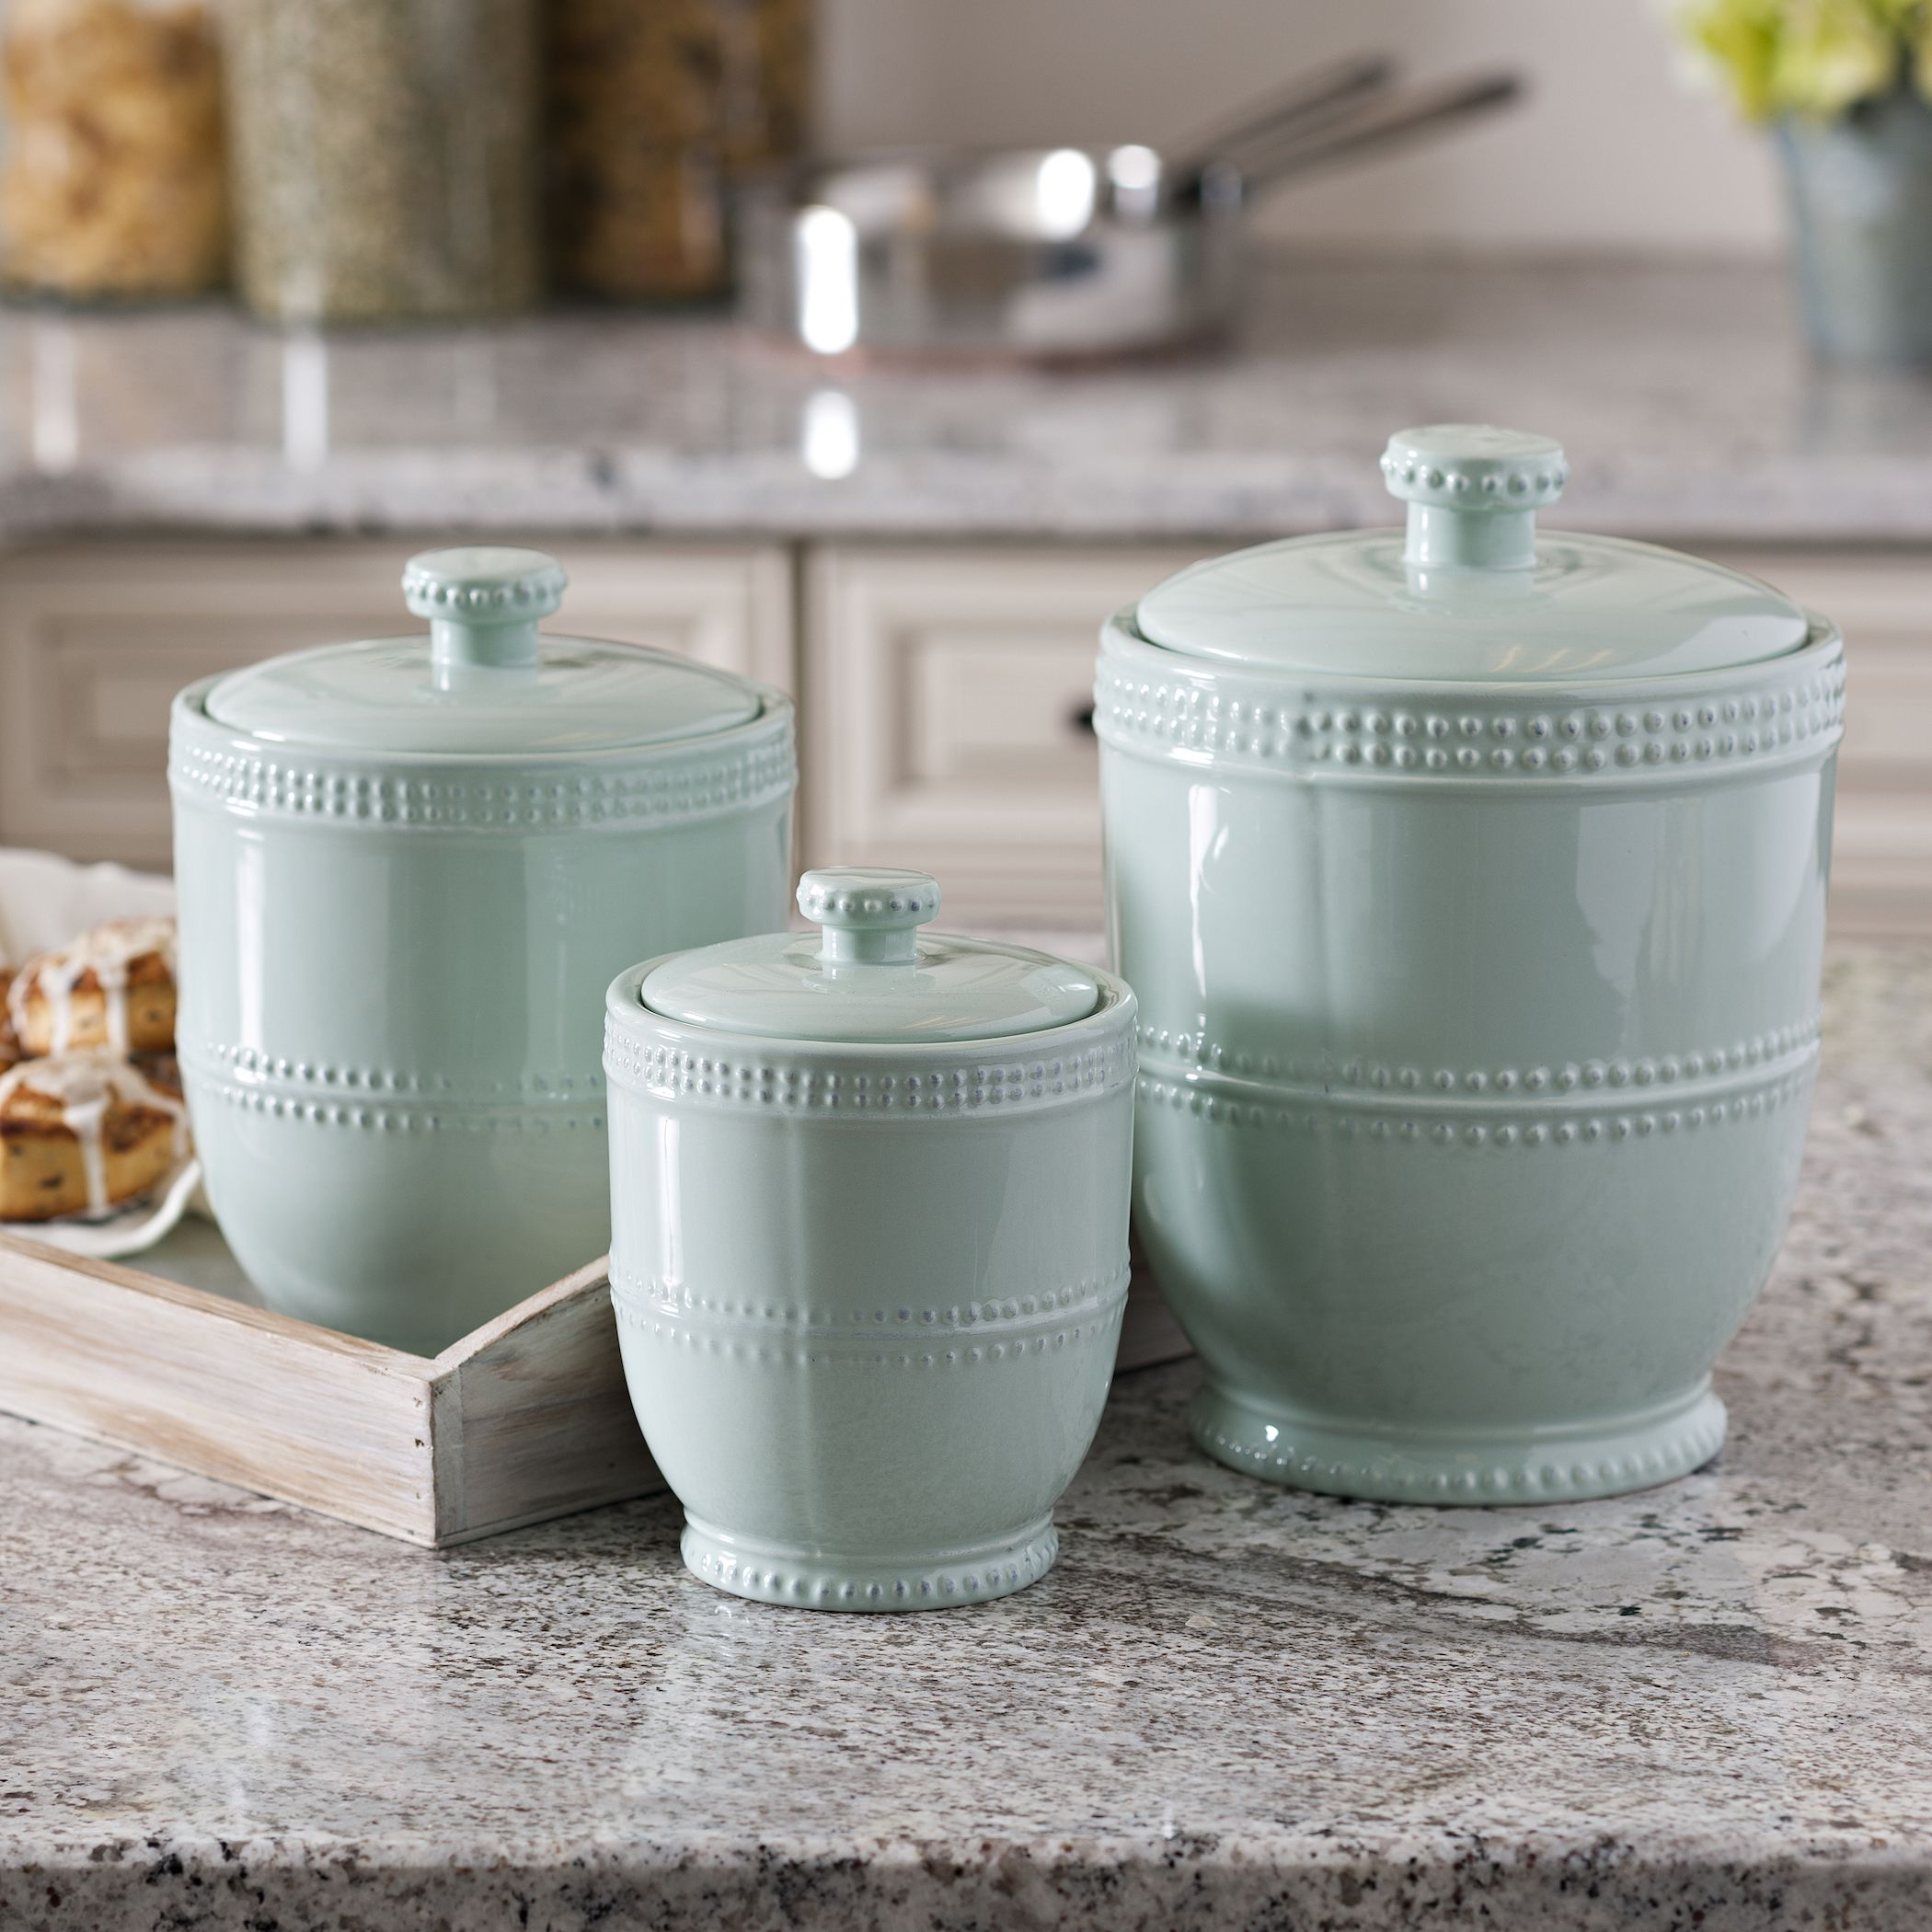 Blue Bianca Bead Canisters, Set of 3 | Pinterest | Kitchens ...